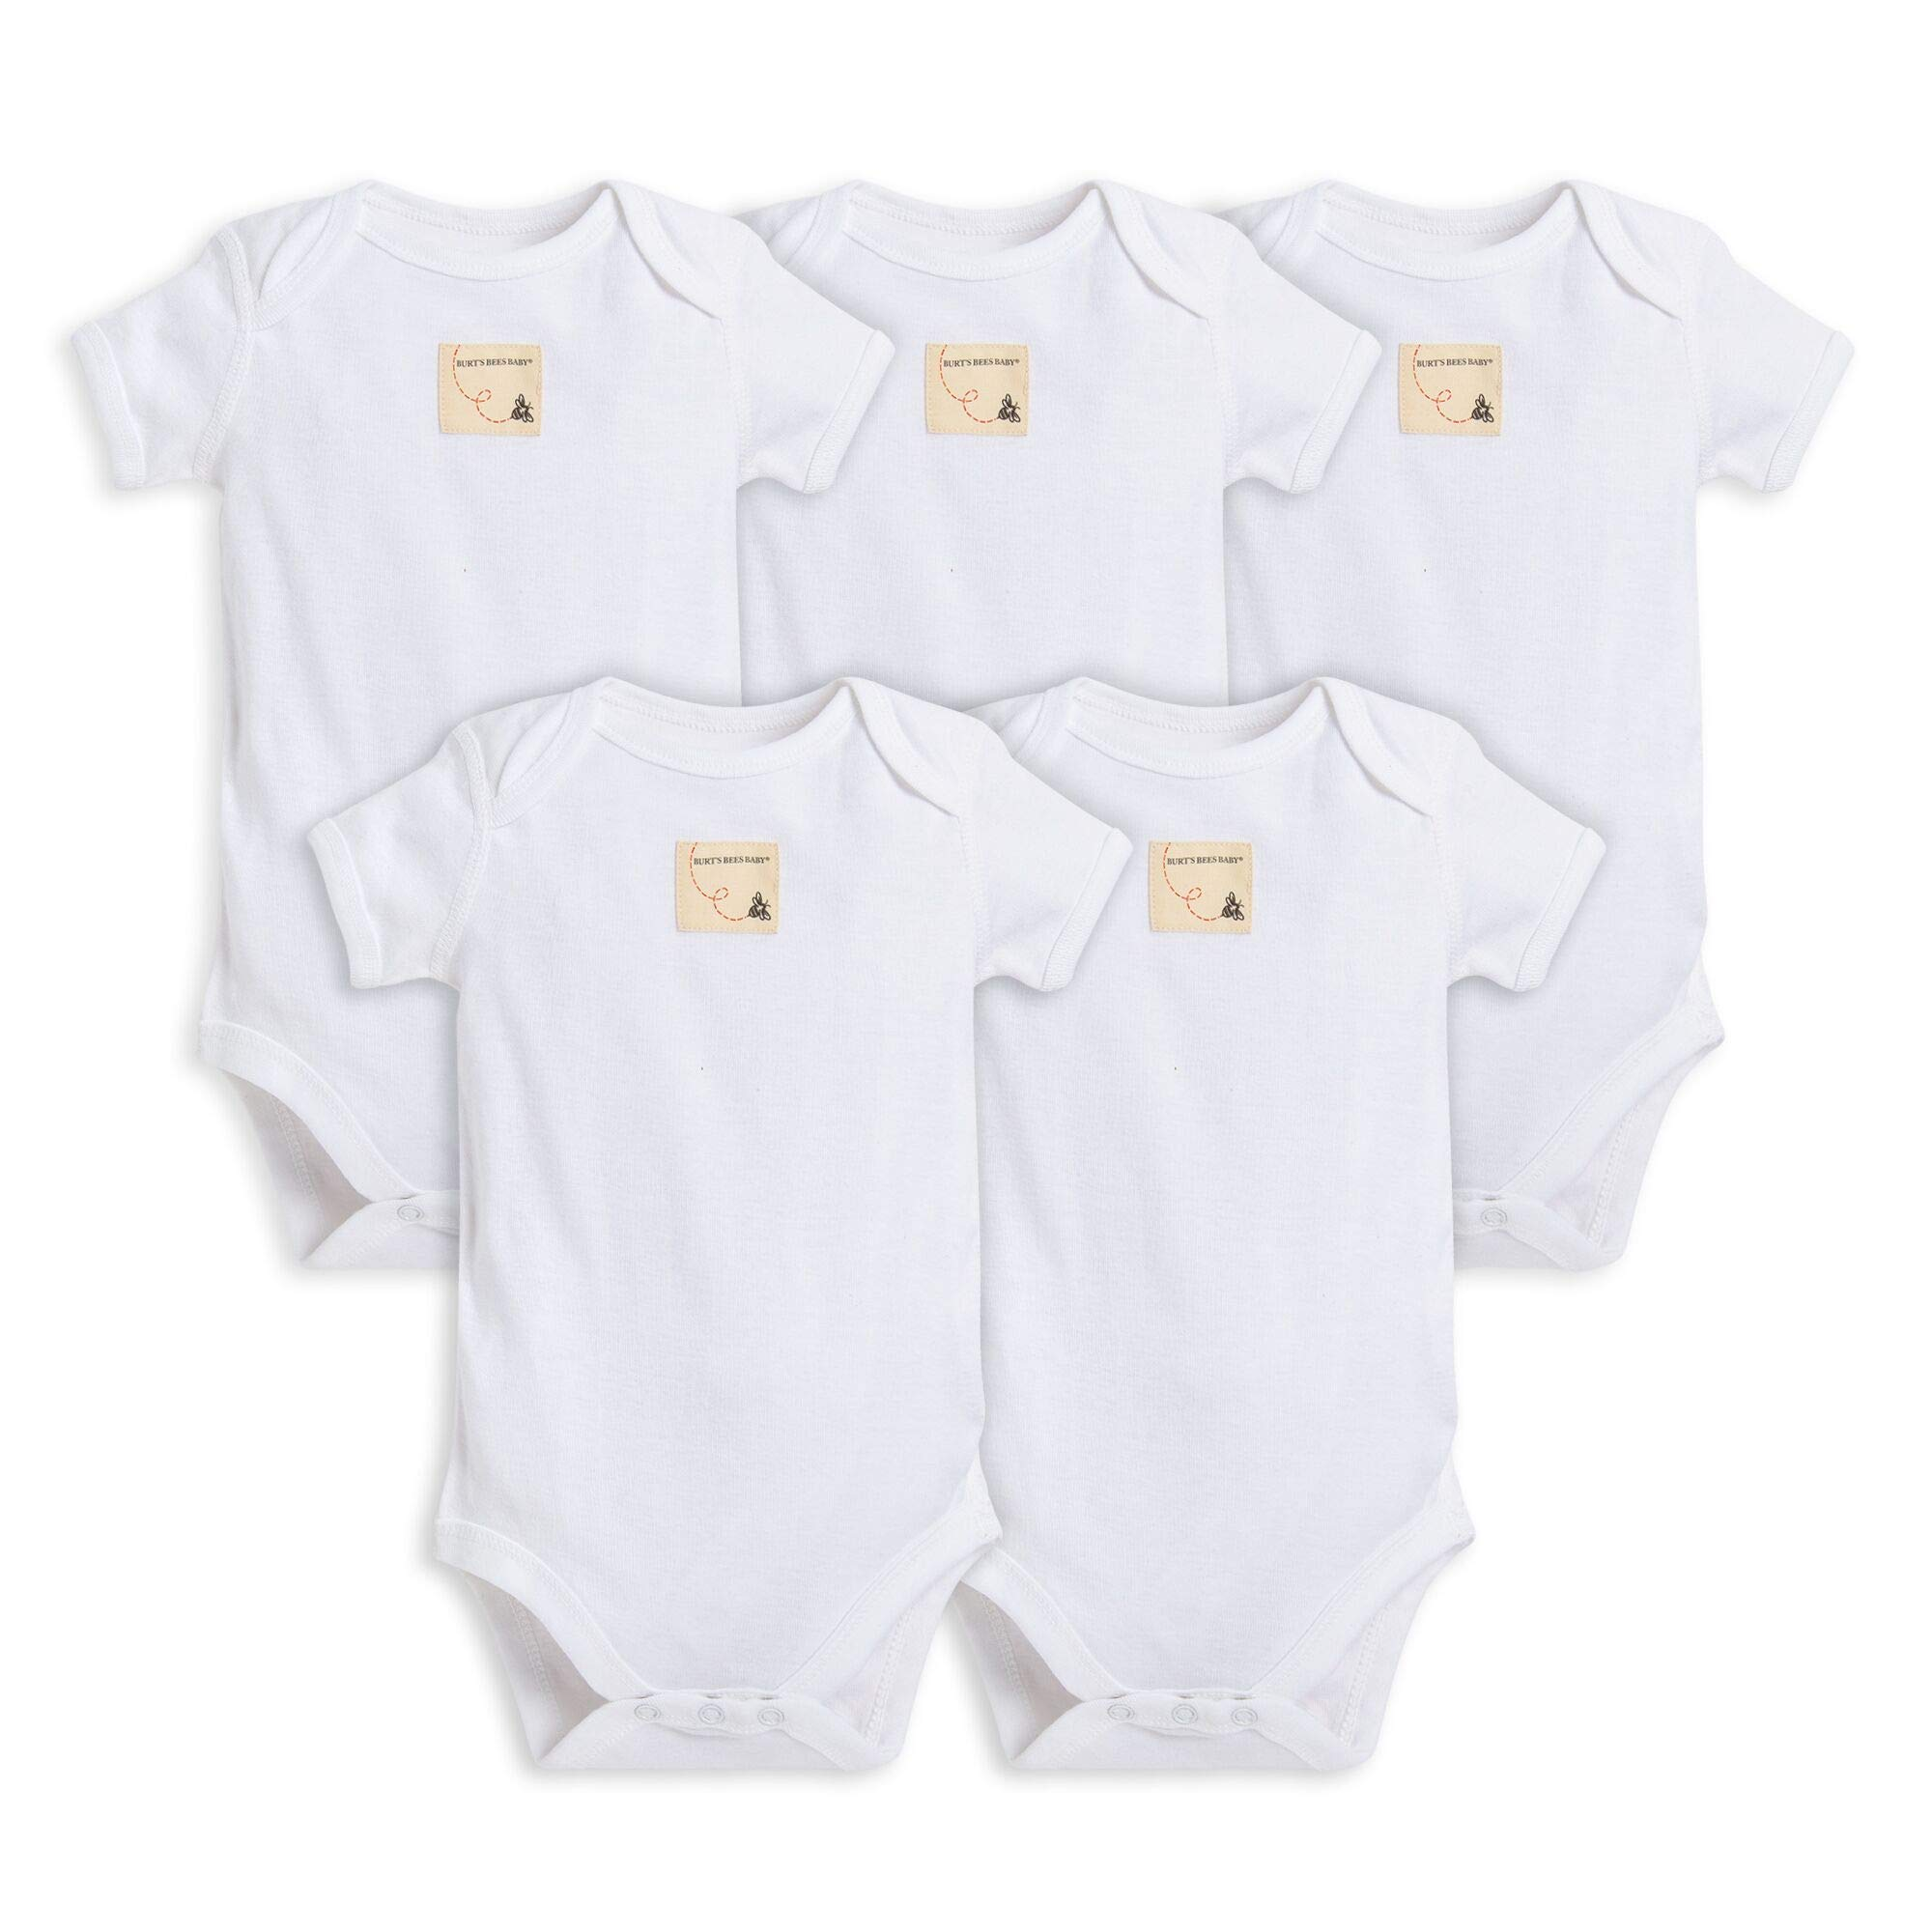 Burt's Bees Baby Unisex Baby Bodysuits, 5-Pack Short & Long Sleeve One-Pieces, 100% Organic Cotton